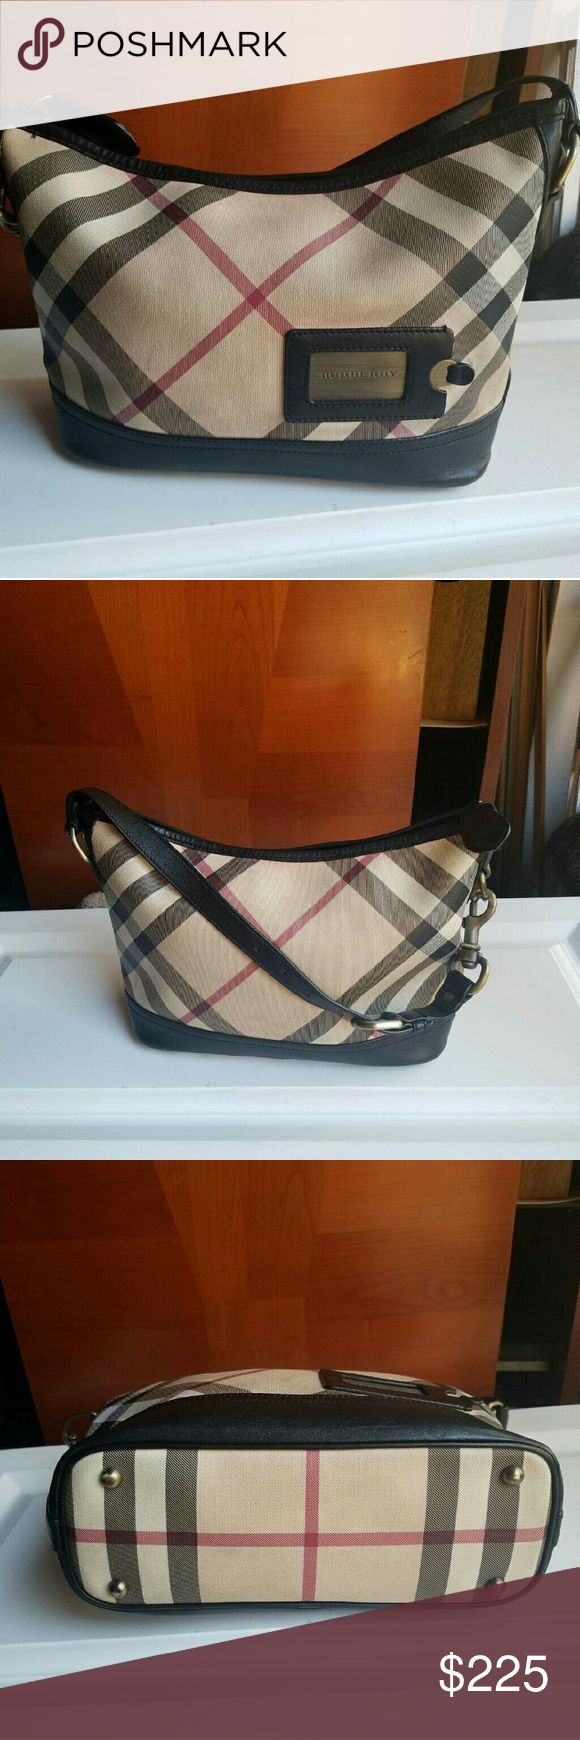 Burberry  hobo  purse model CNPANSIM1PAN. Authentic in good  condition. few minor stains of Wich I included pict of in last 2 photos burberry  metal anblem  Wich can be pulled out and serves as mirror  13 inch wide about 8 inch tall  6 inch handle drop this is a amazing deal for this brand &this purse  also  posted extra listing with additional  photos of friend mum posing with it  for visual  my listings are my items all authentic  this  is my purse purchased by me @ Burberry store on…